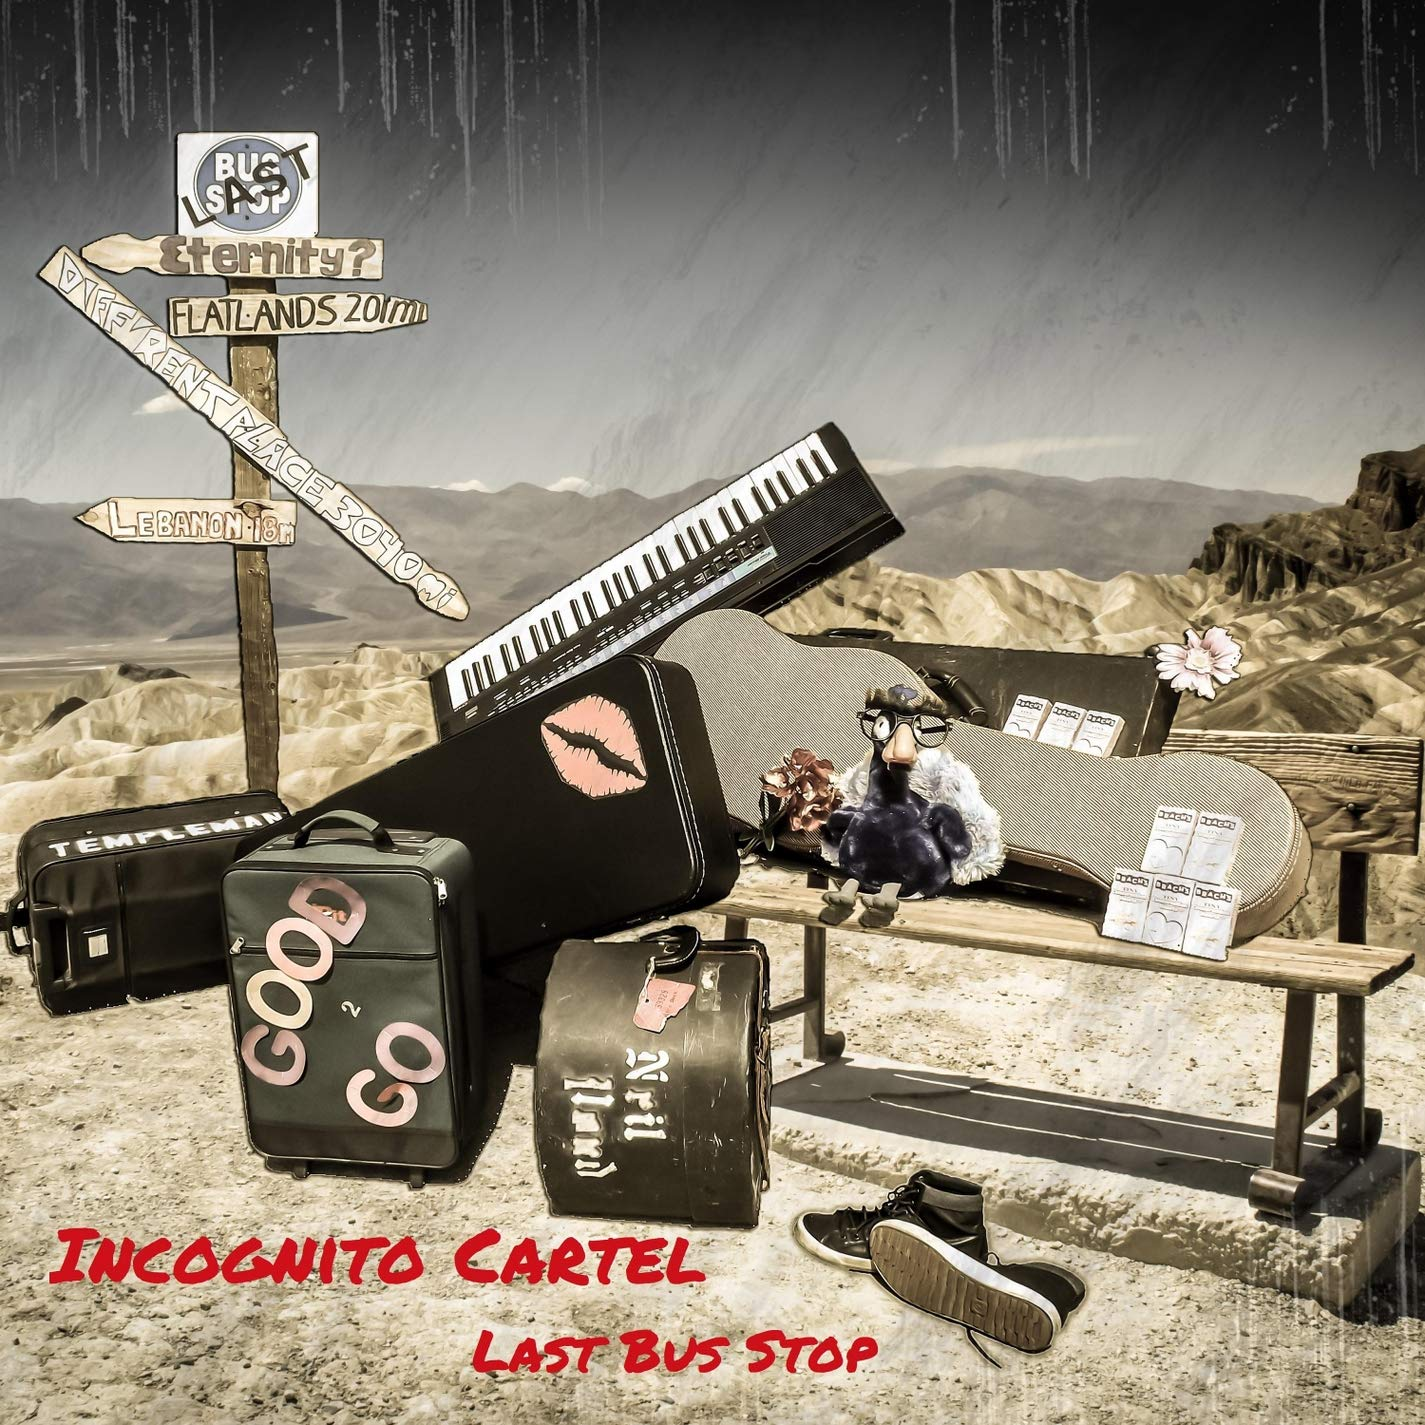 Incognito Cartel - Last Bus Stop - Amazon.com Music